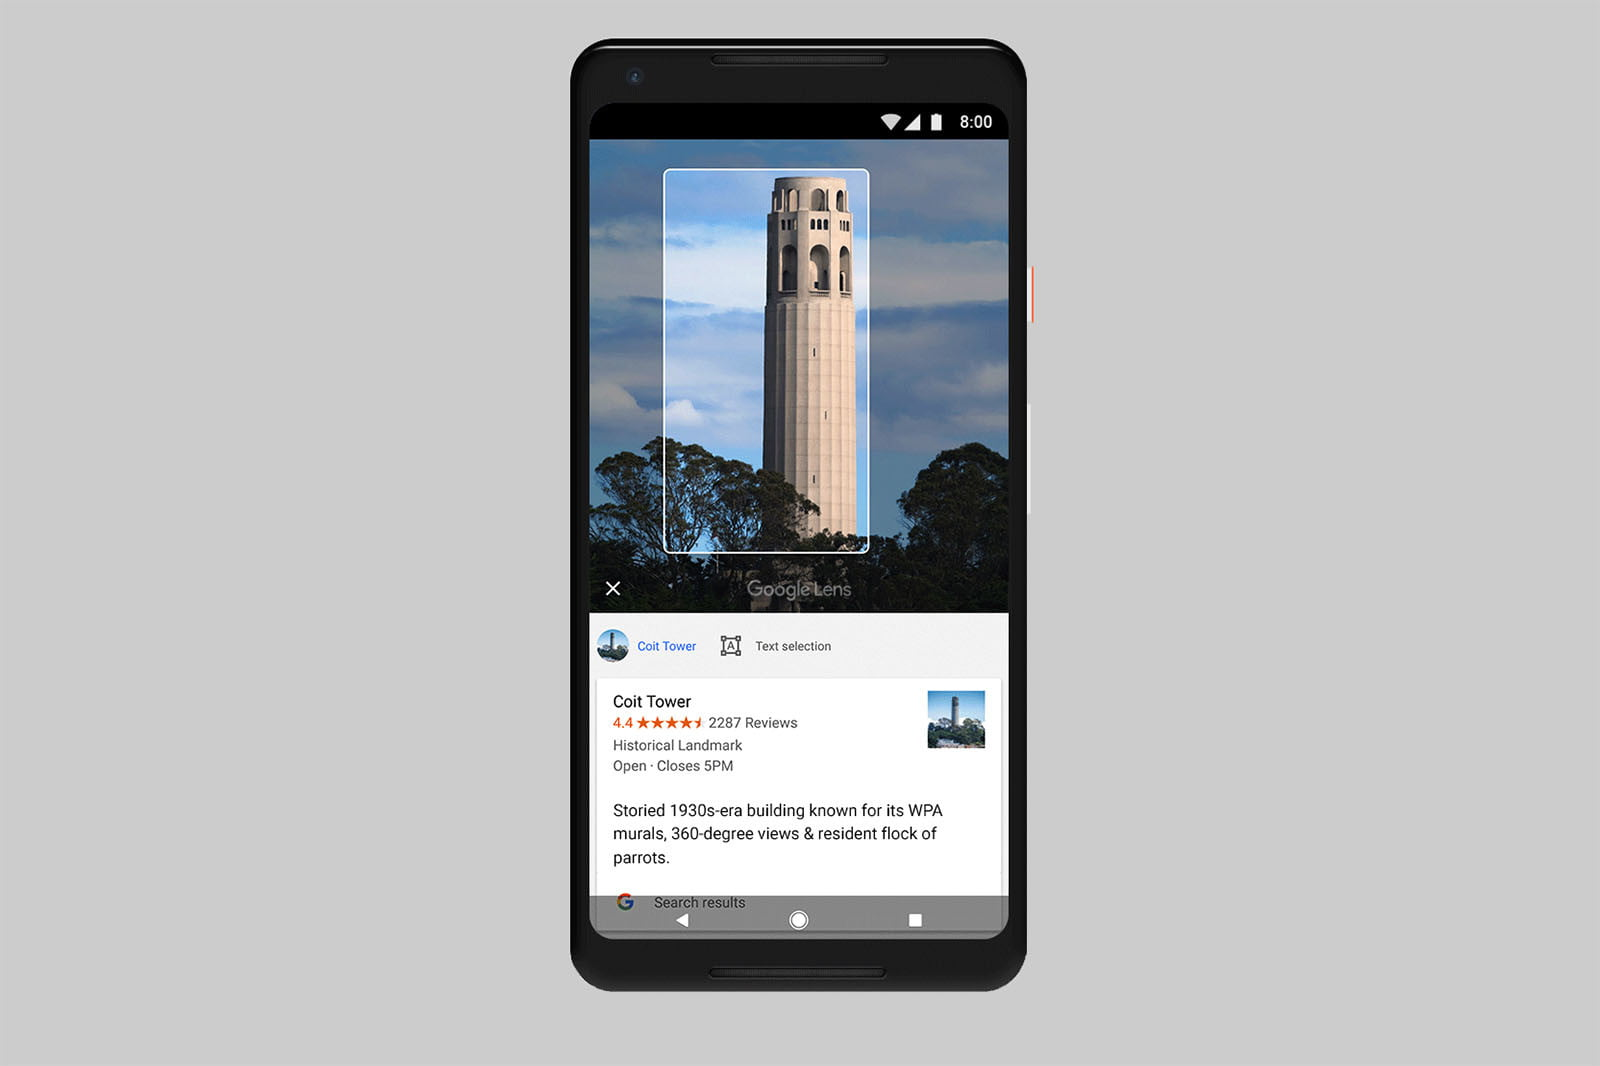 Smart Google Lens upgrade lets you analyze any image on your phone